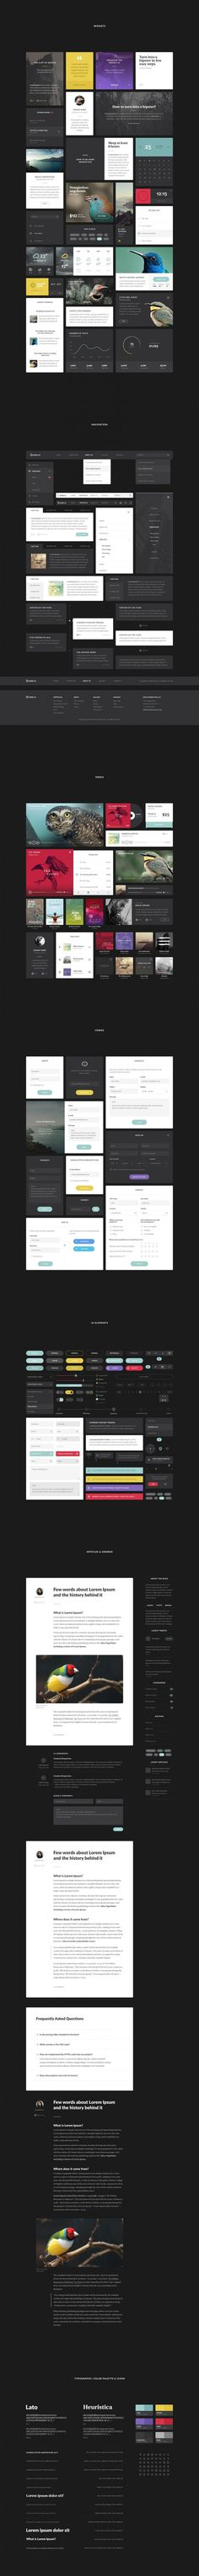 Aves UI Kit #design #interface #kit #ui